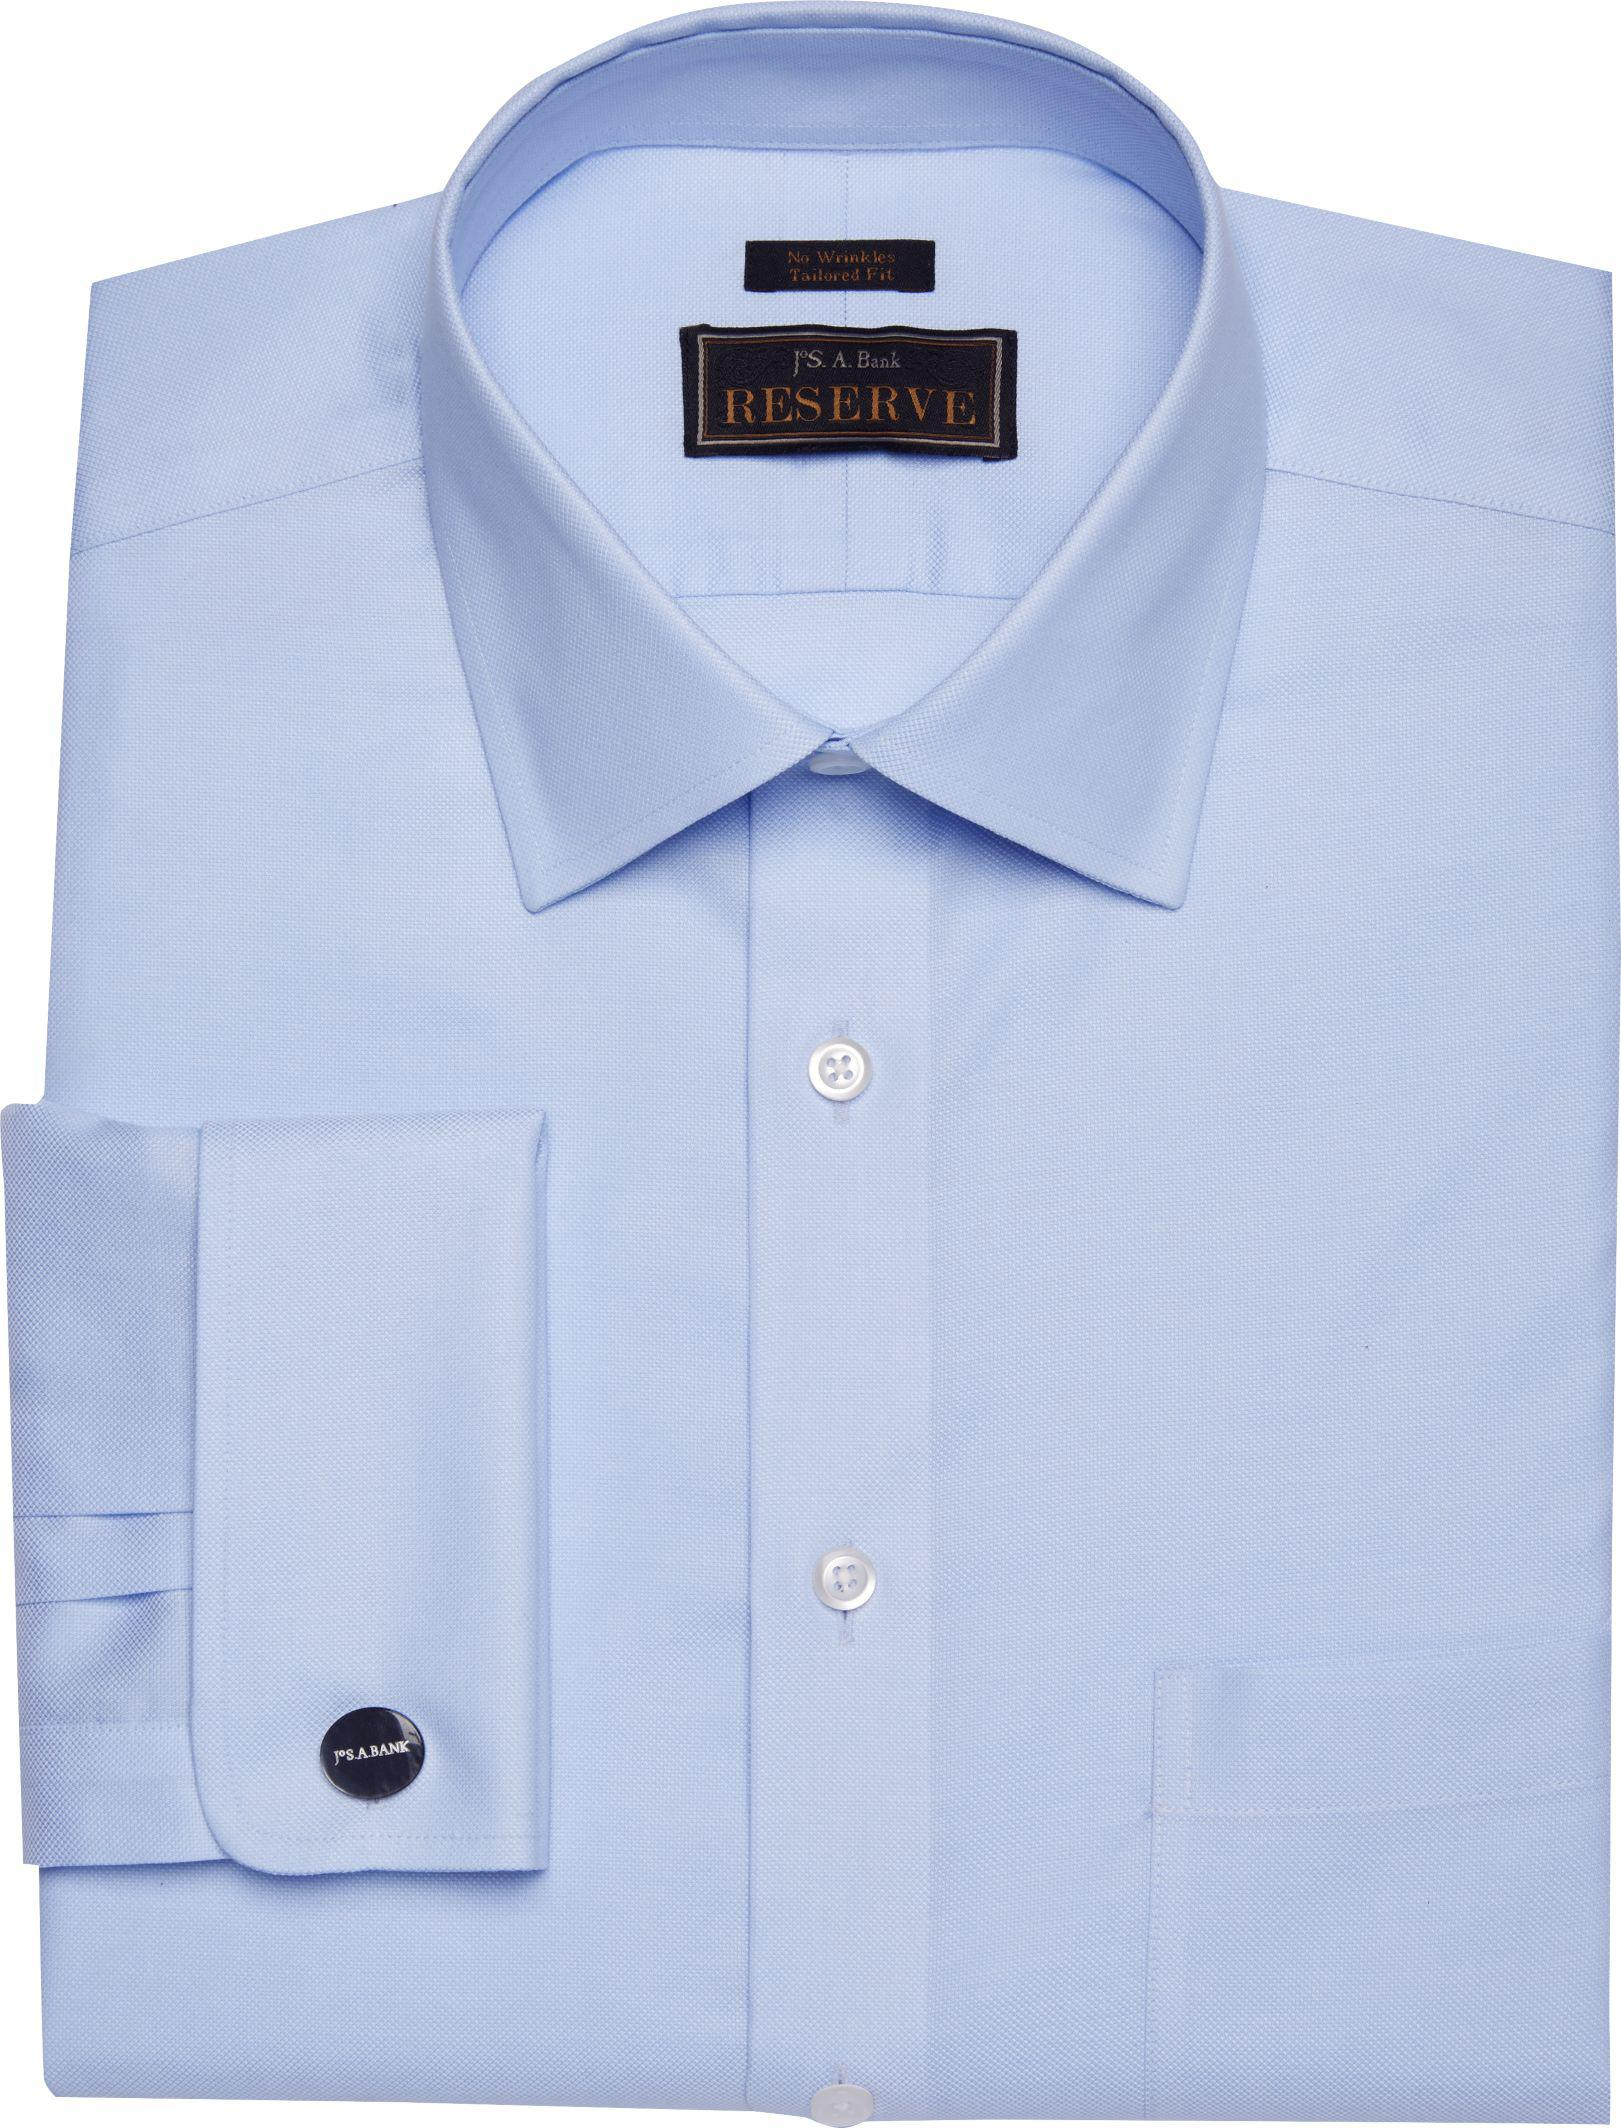 Lyst jos a bank reserve collection tailored fit spread for Tailored fit dress shirts